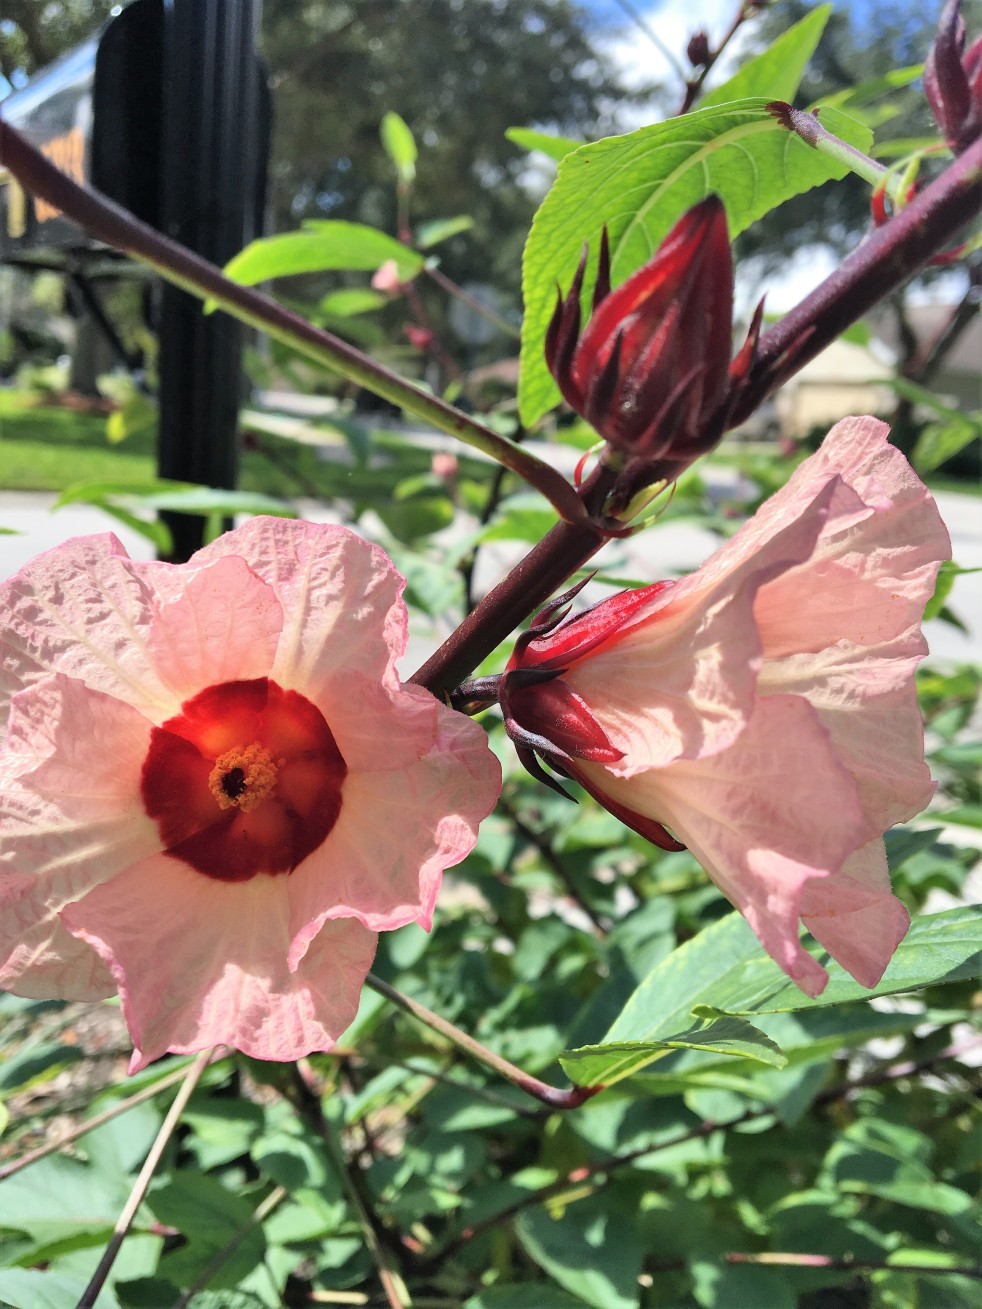 Edible cranberry hibiscus shrub plants and beyond edible cranberry hibiscus shrub izmirmasajfo